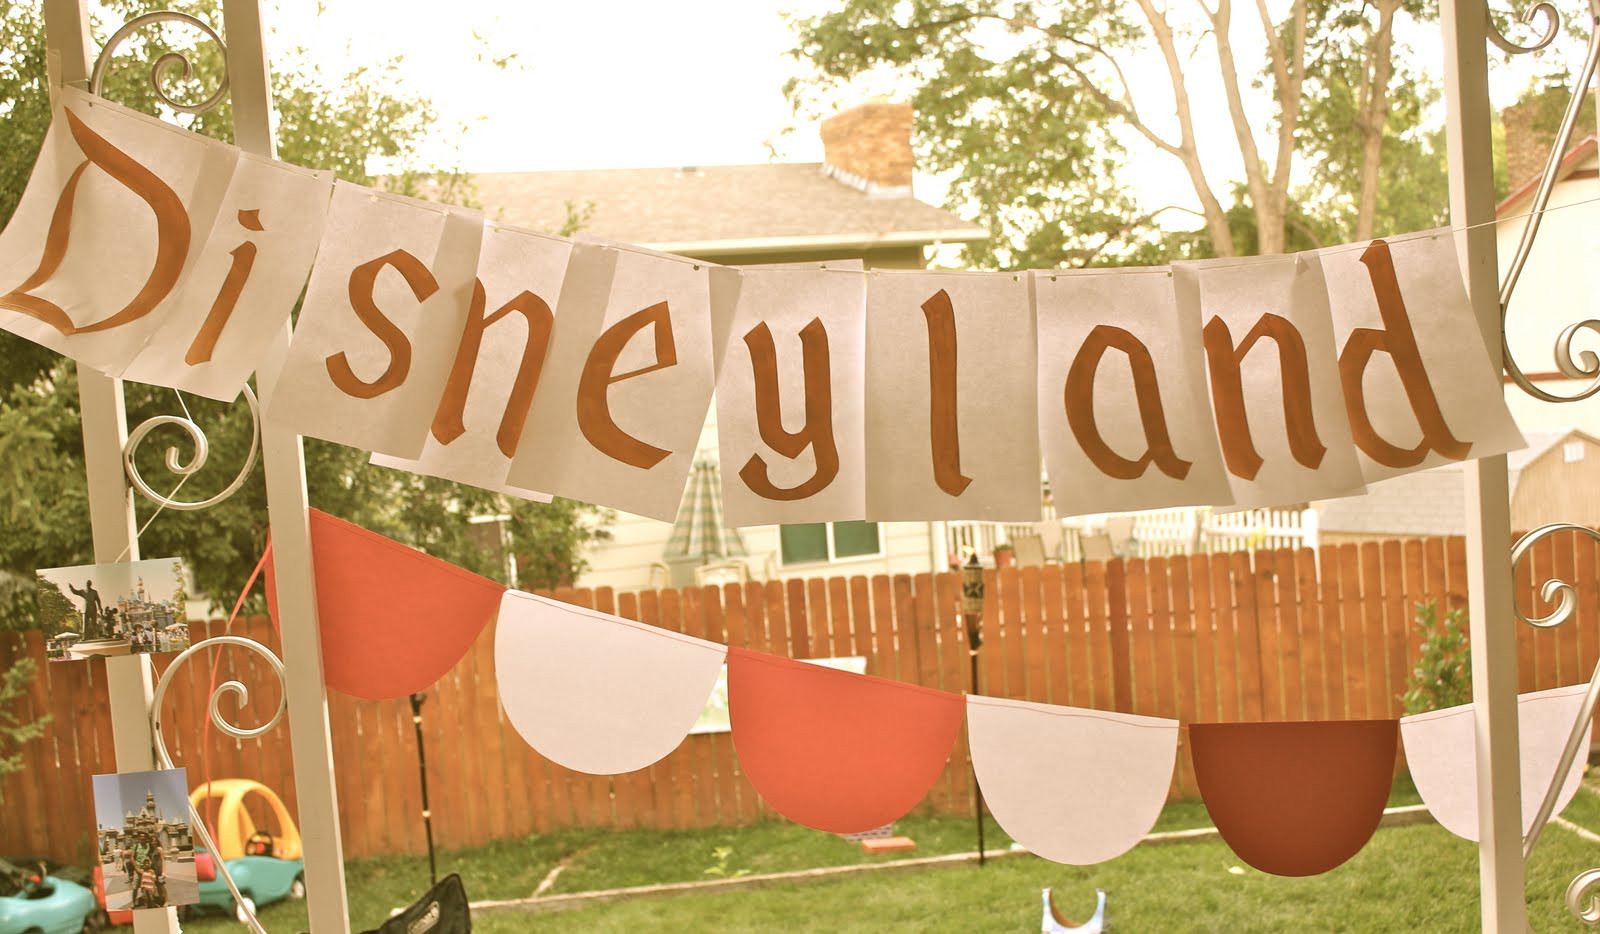 Best ideas about Disneyland Birthday Party . Save or Pin meg andy A Disneyland Party Now.